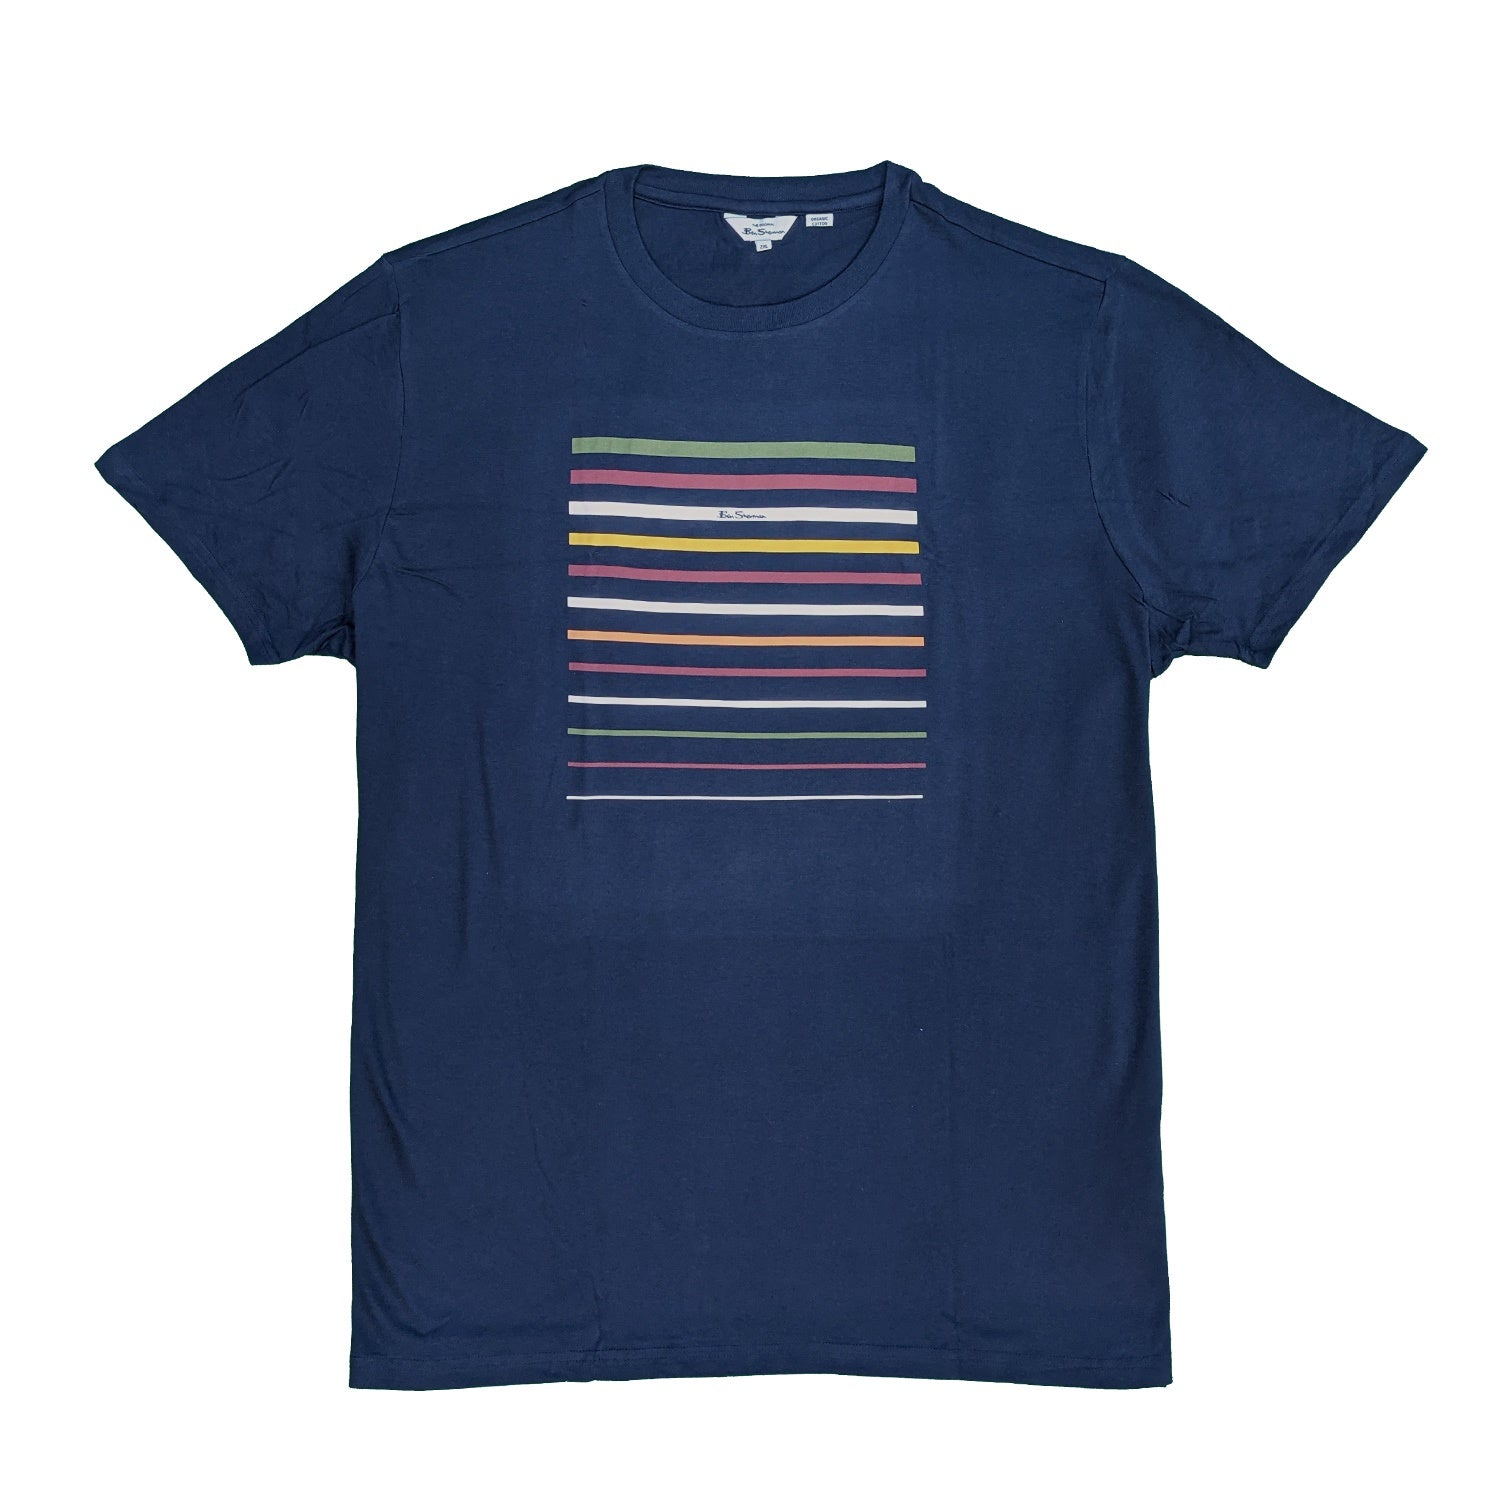 Ben Sherman T-Shirt - 0061643IL - Dark Navy 1